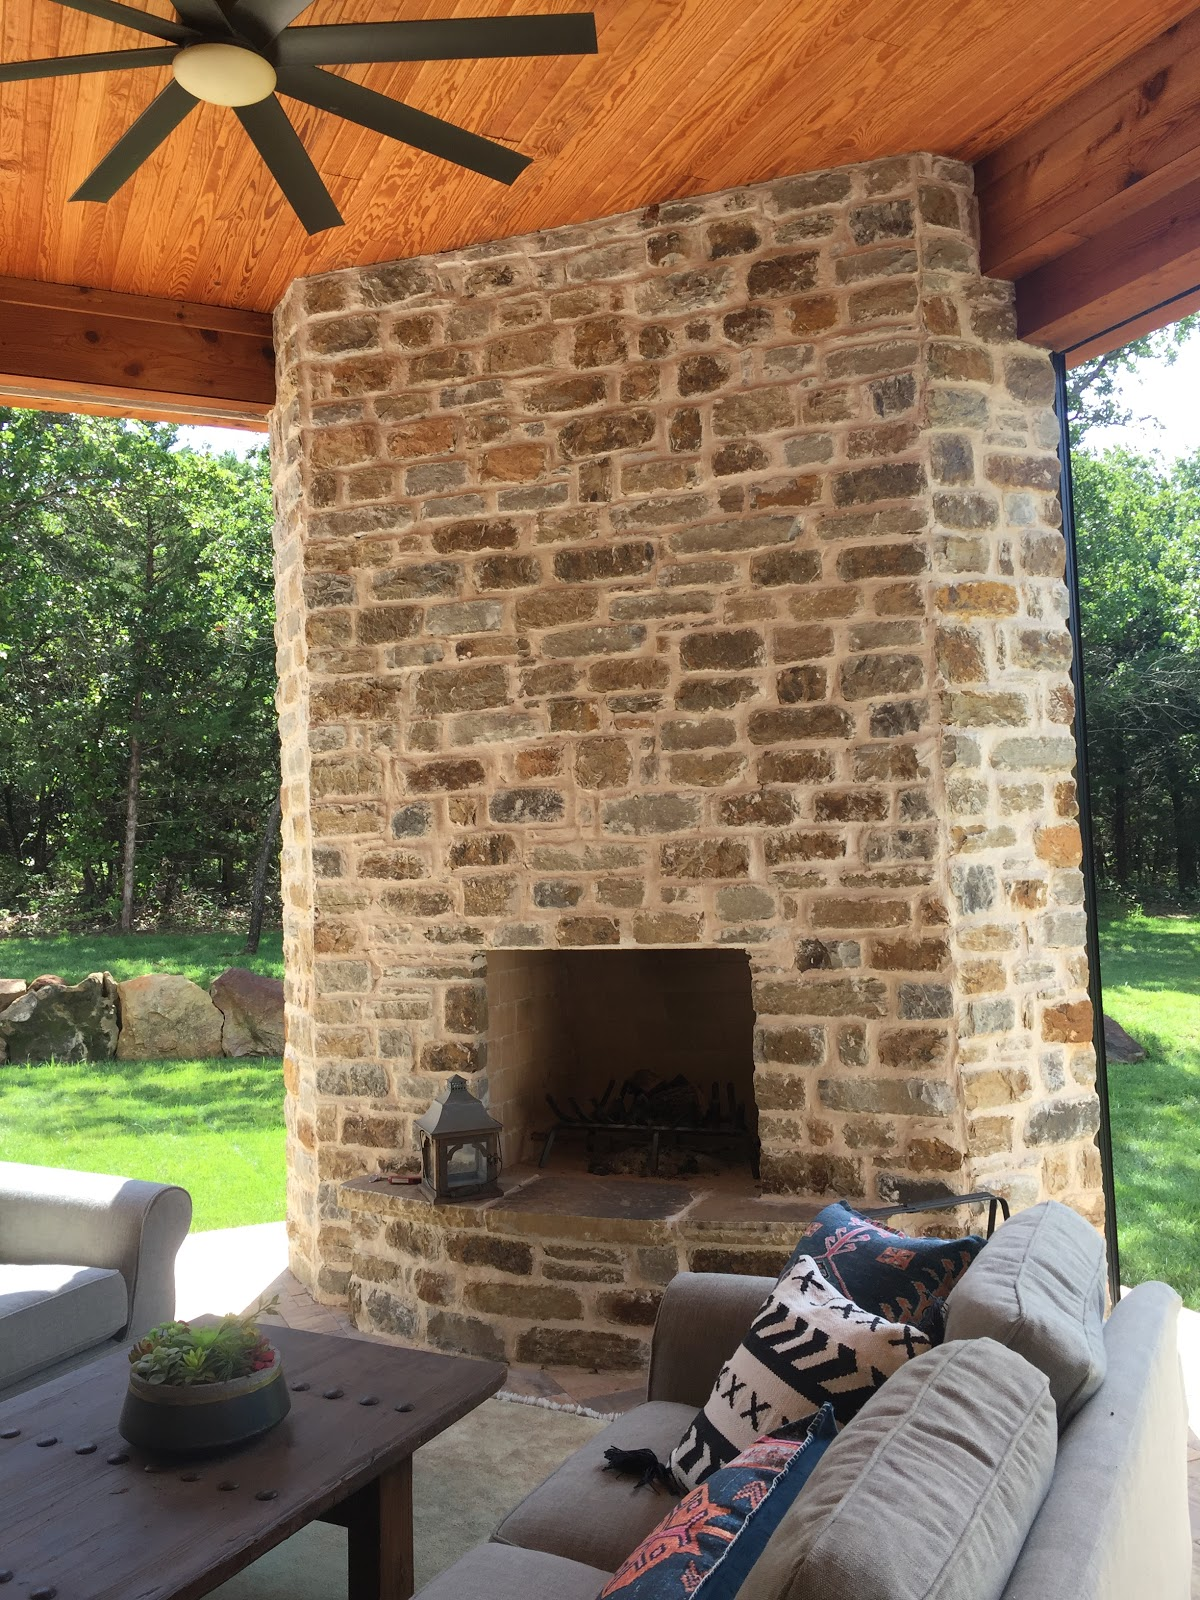 Cabin Creek Blue Brown Cut Mix Used to Build A Fireplace